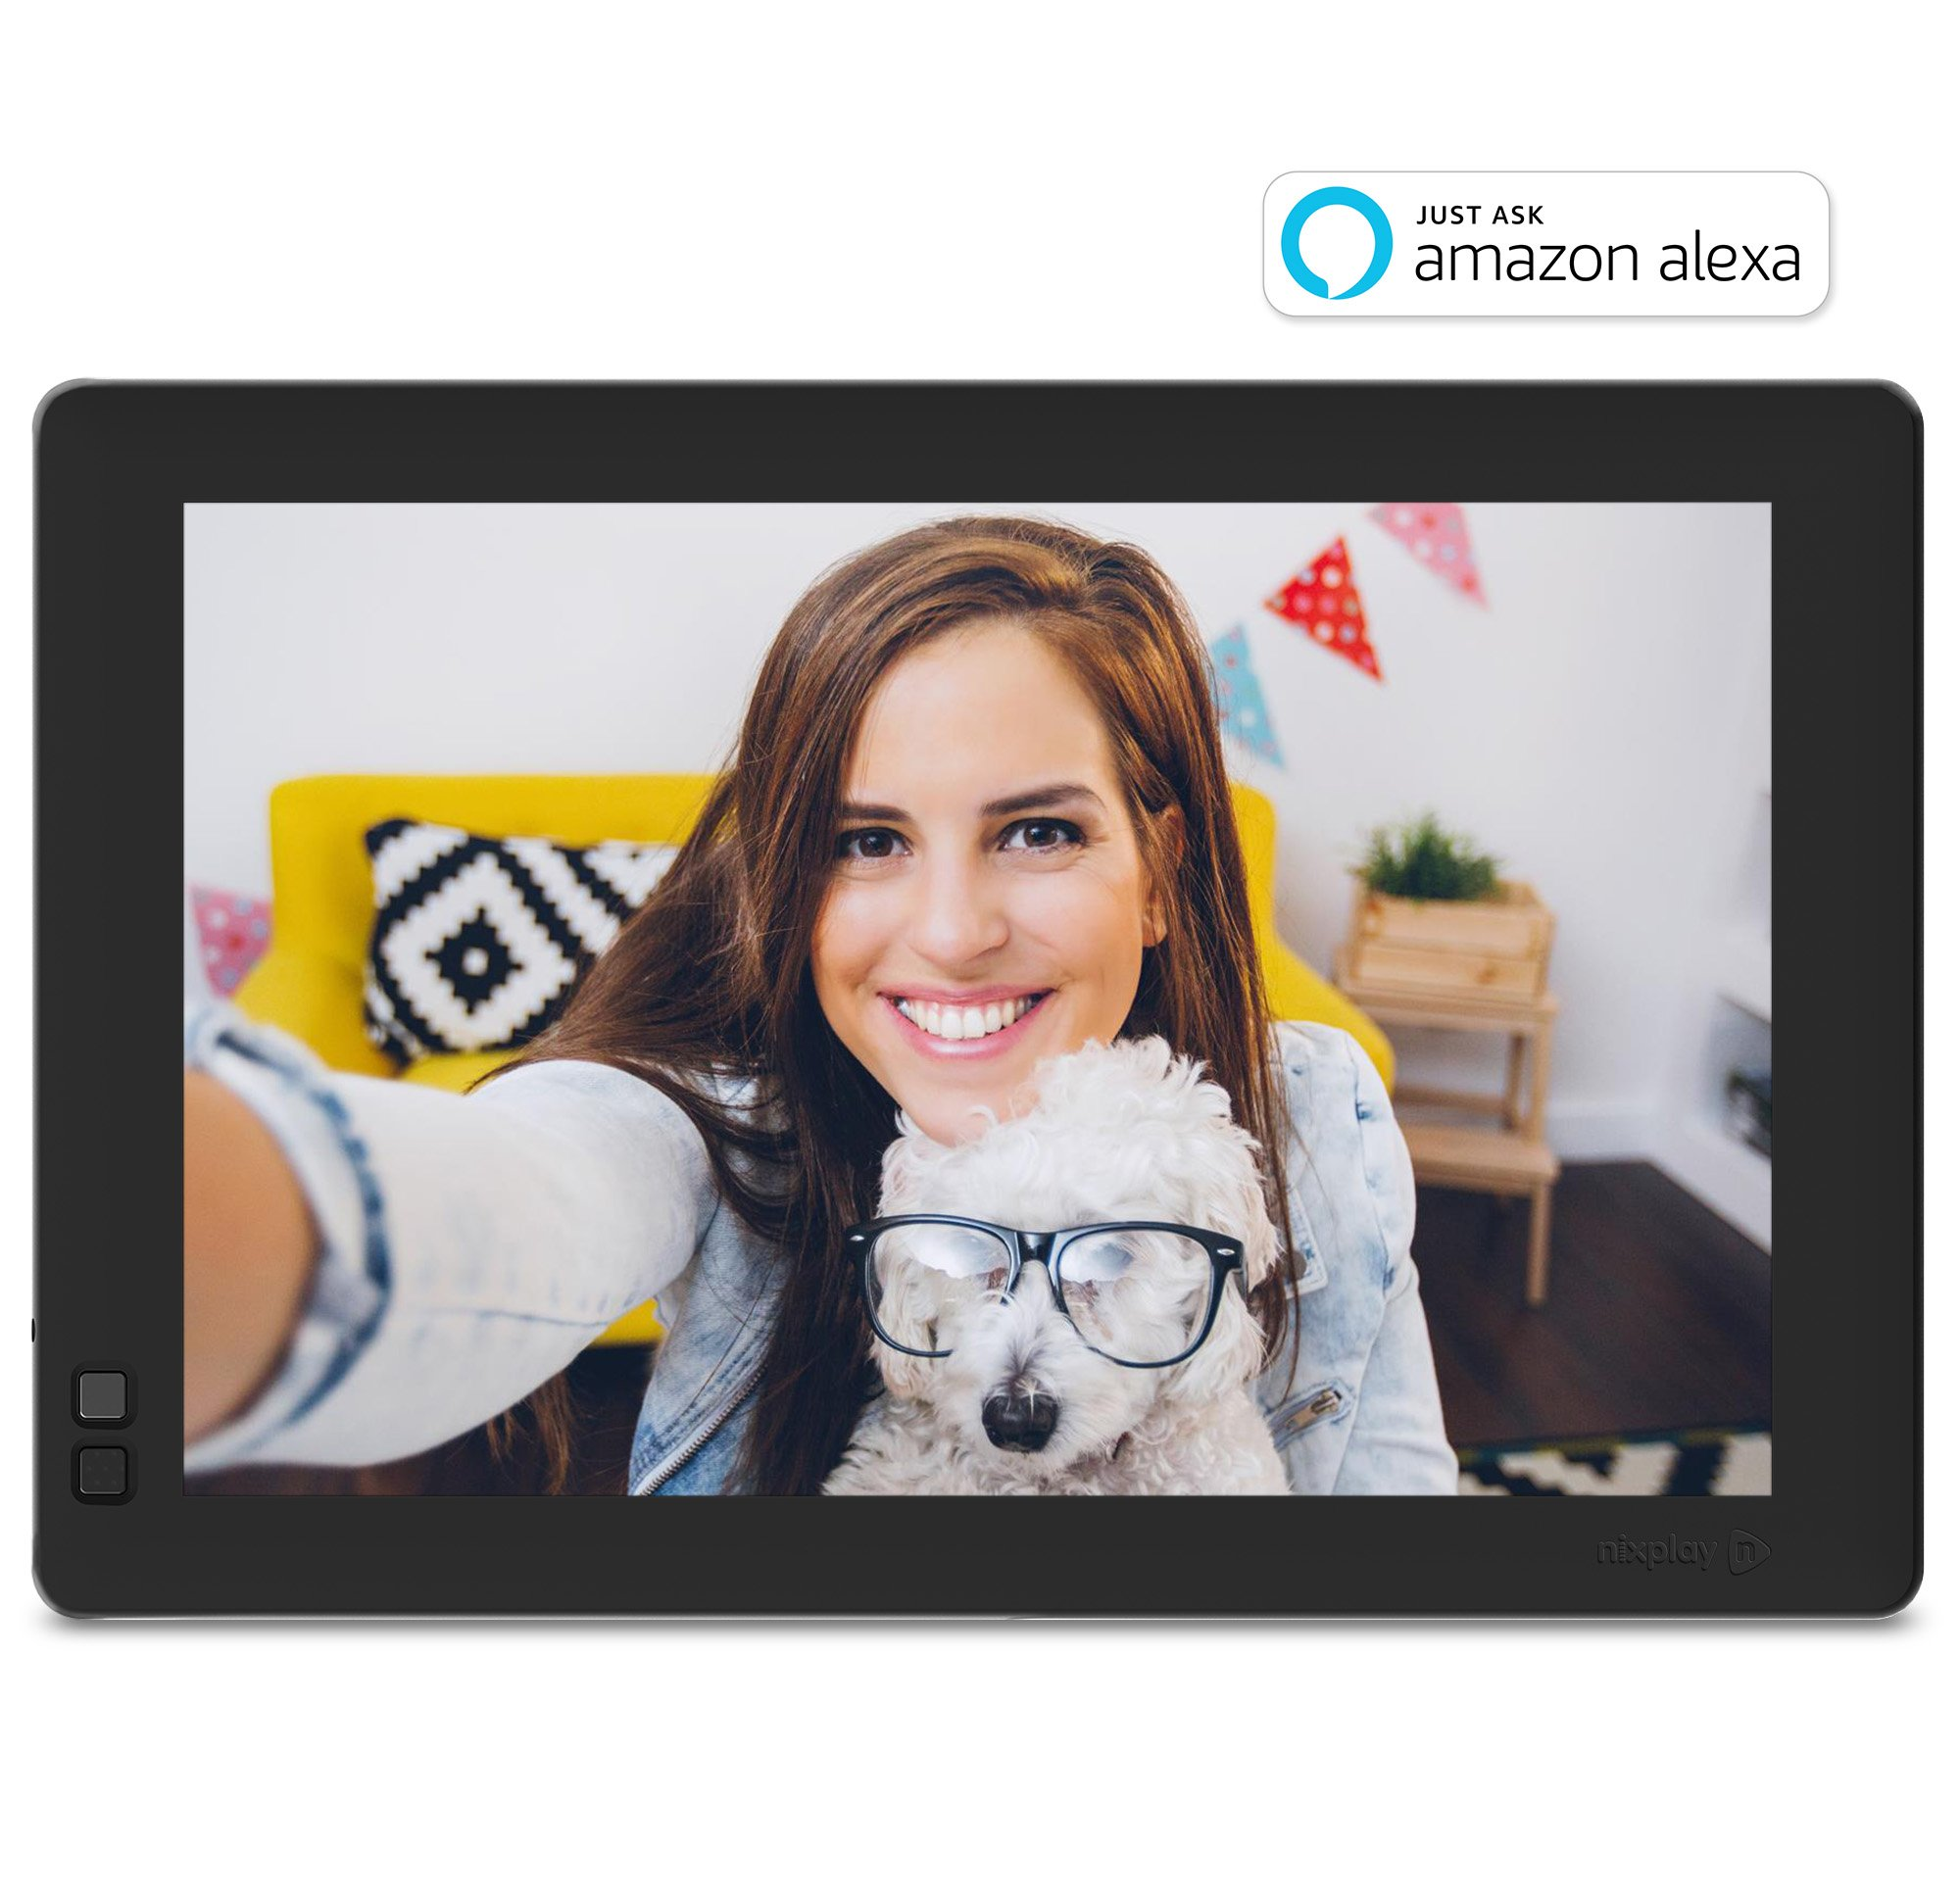 Nixplay W10B Seed 10.1'' Widescreen Wi-Fi Cloud Digital Photo Frame with IPS Display, iPhone & Android App, iOS Video Playback, Free 10GB Online Storage, Alexa Integration and Hu-Motion Sensor, Black